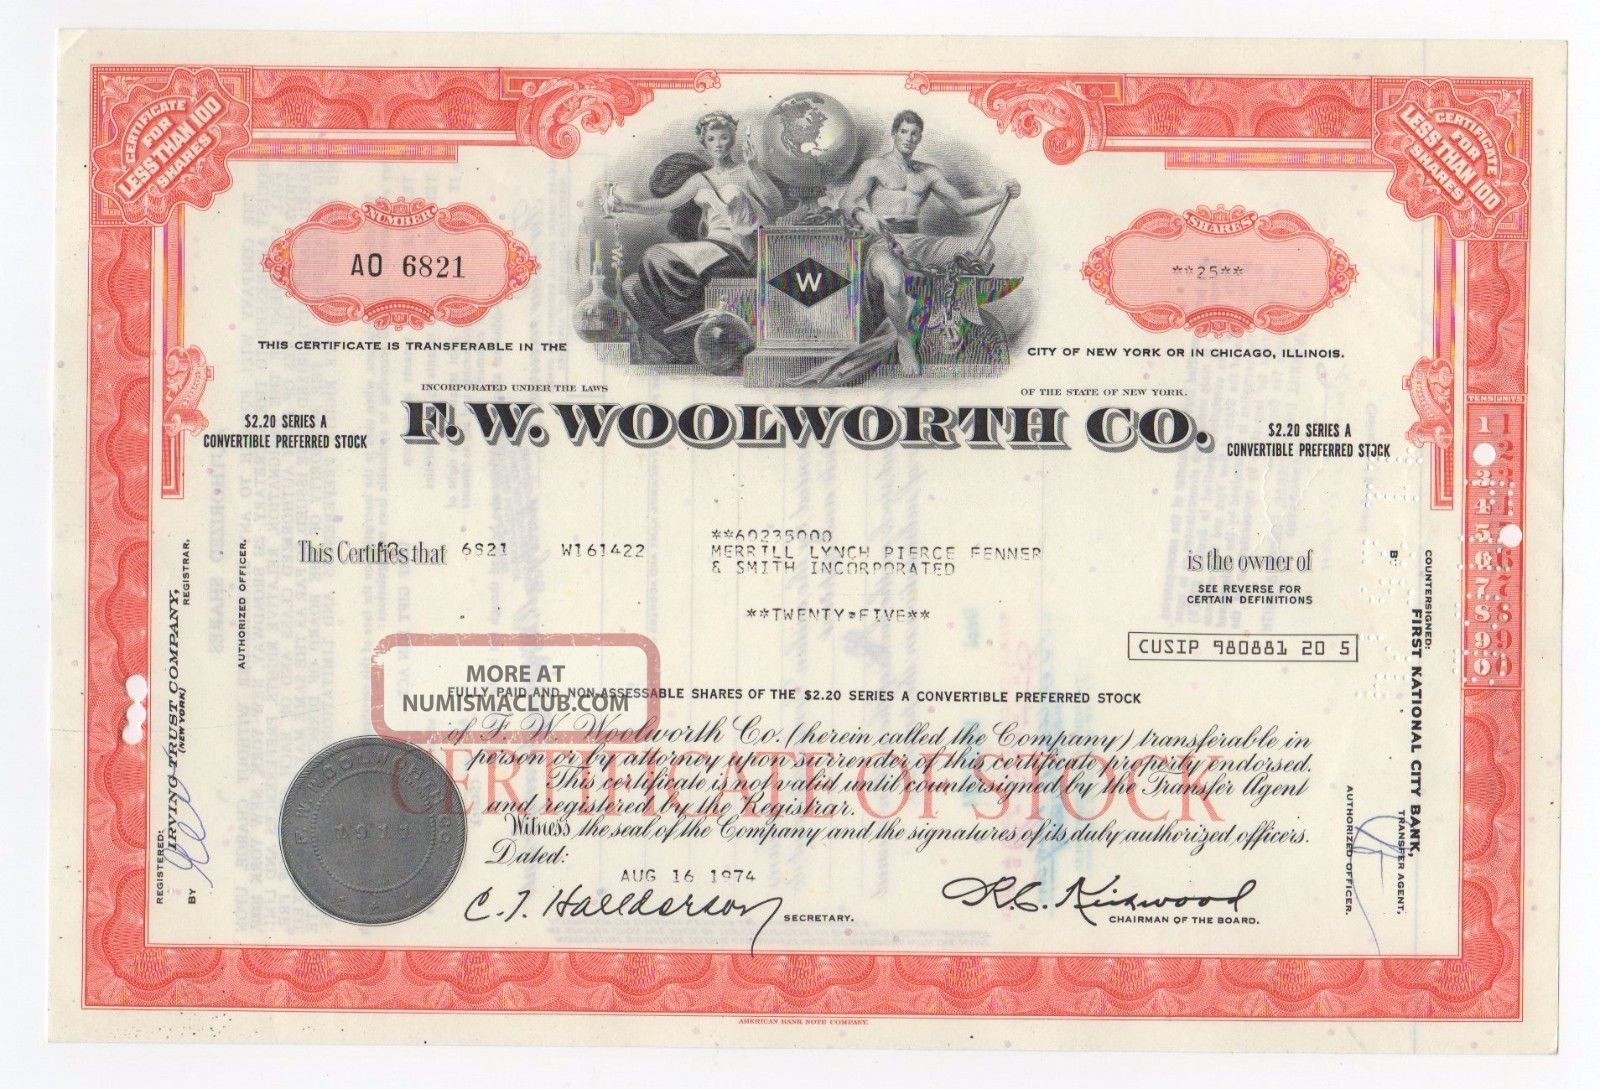 F.  W.  Woolworth Co.  Stock Certificate Stocks & Bonds, Scripophily photo